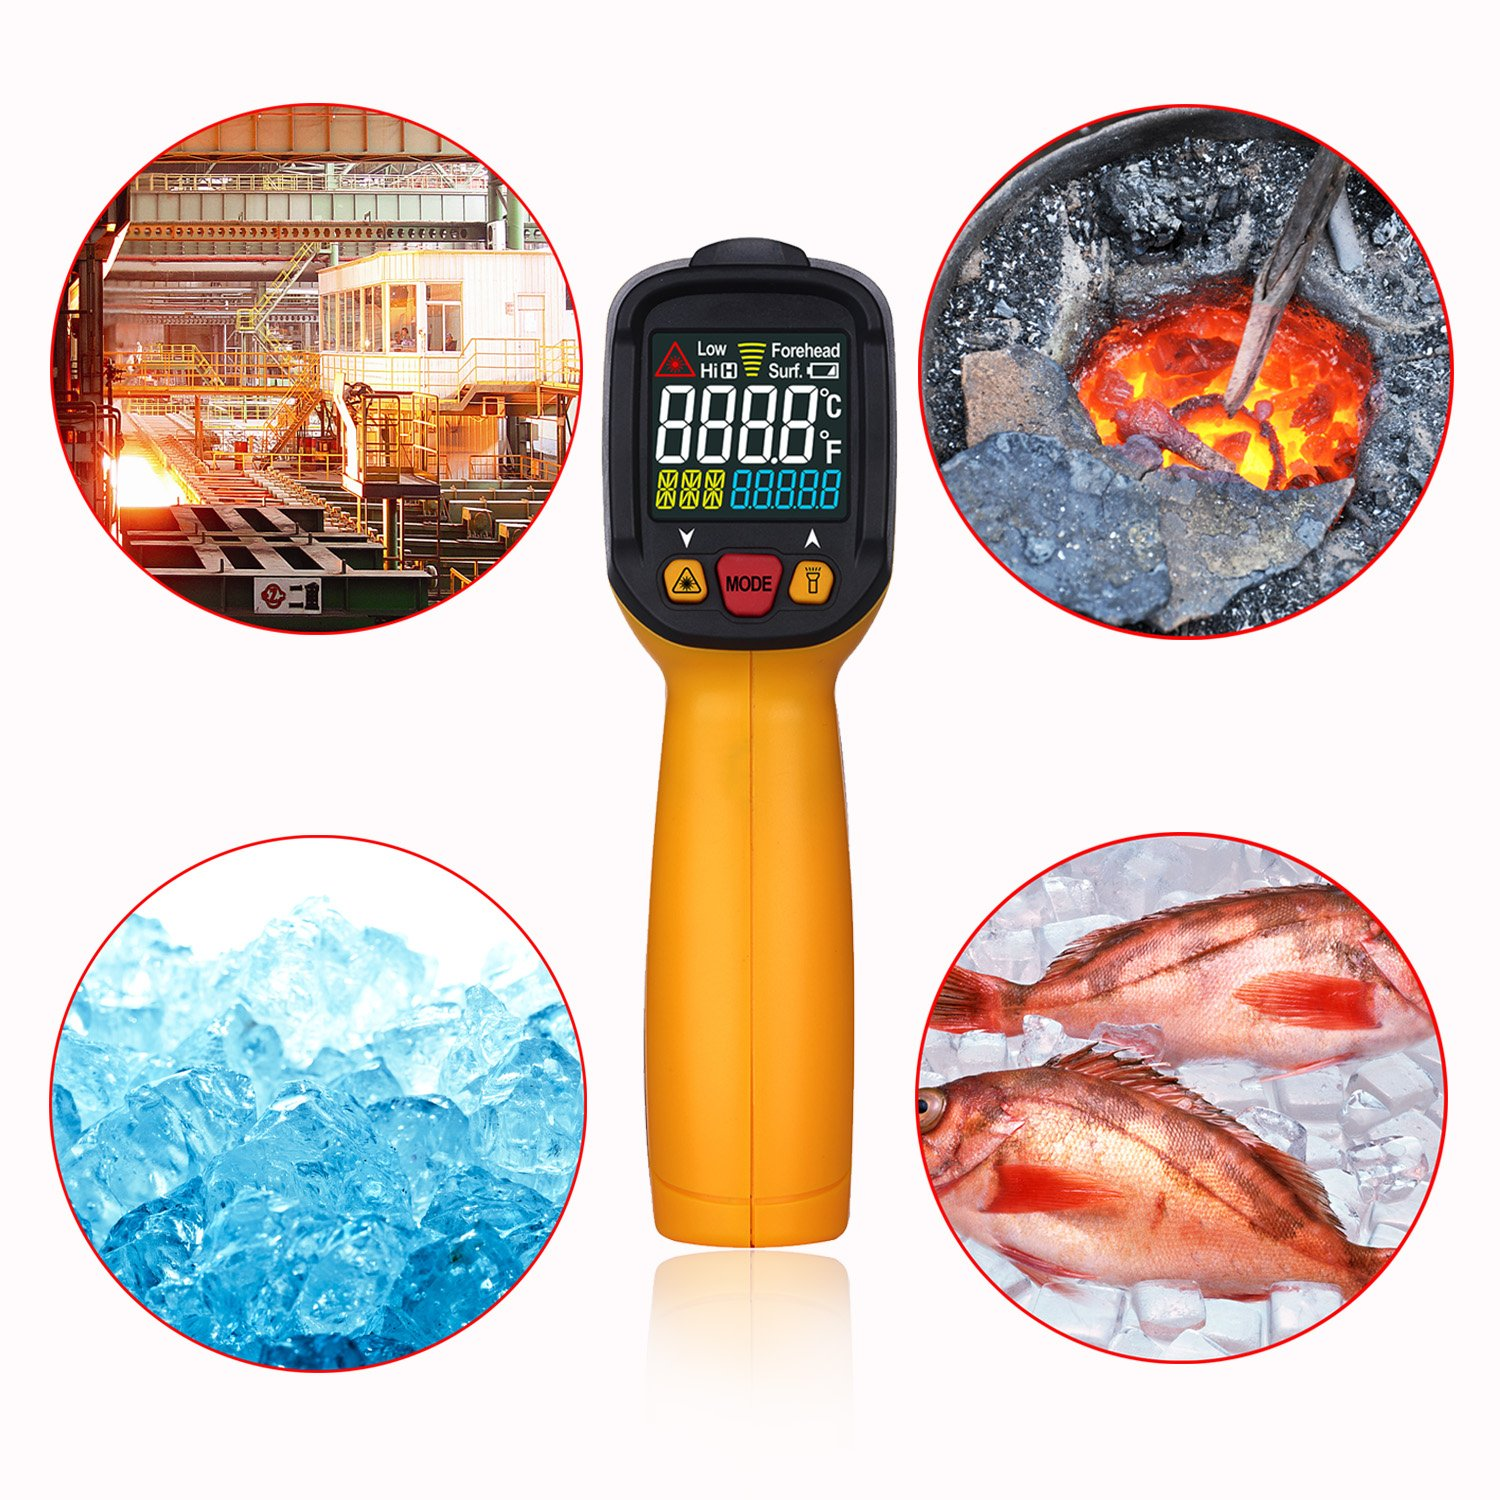 Digital Infrared thermometer Peakmeter PM6530A Laser IR Temperature Gun LCD for Kitchen Cooking Automotive with Temperature Bridge Alarm Function Display -58°F~572°F(-50°C~300°C) by uvcetech (Image #4)